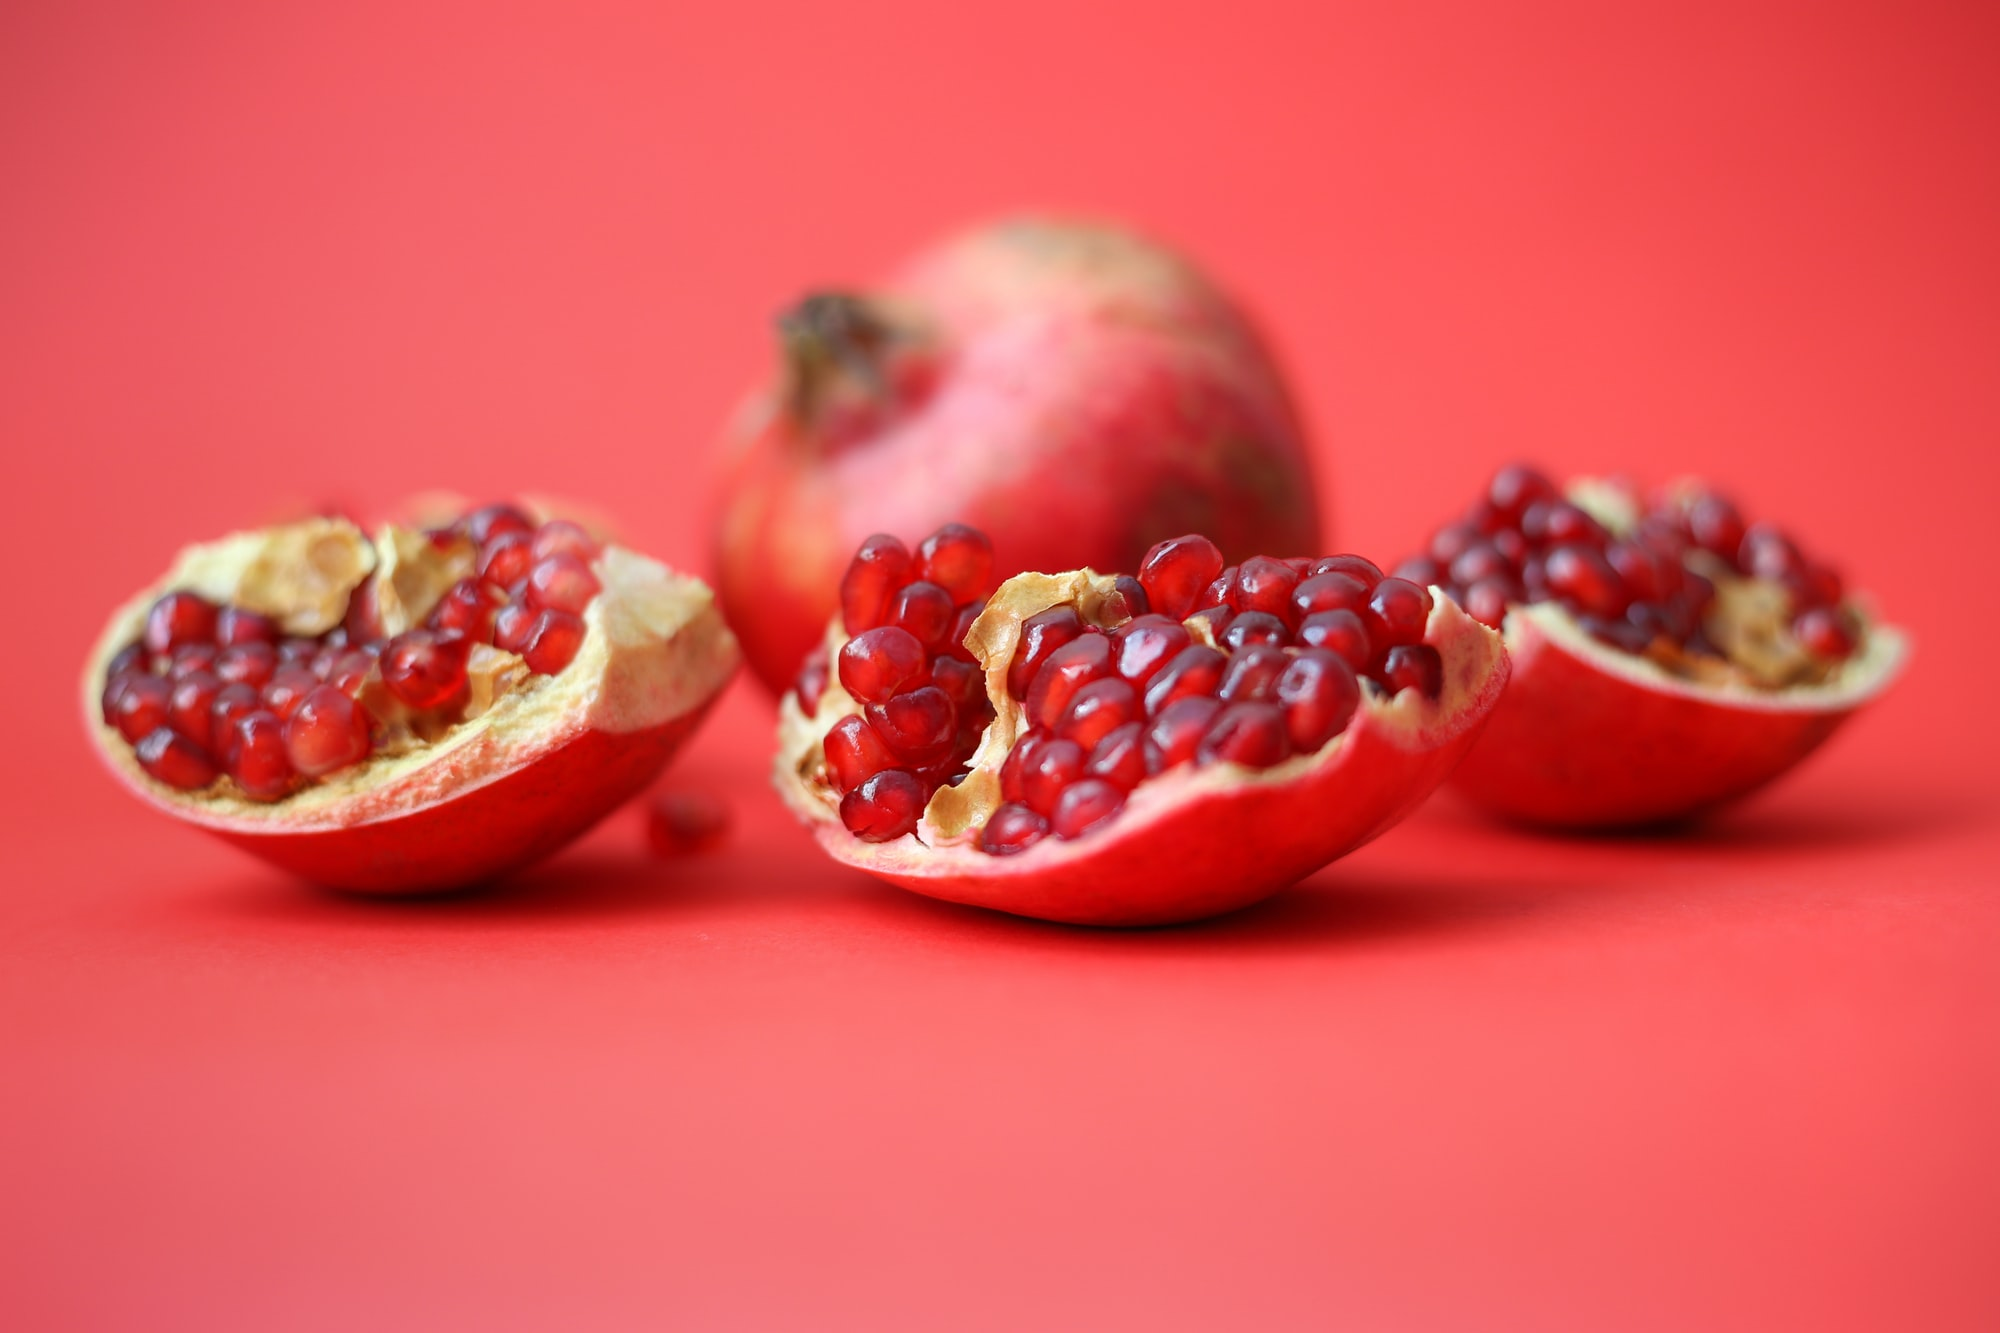 Pomegranate is a healthy fruit with a mythical past by Sahand Babali for Unsplash.